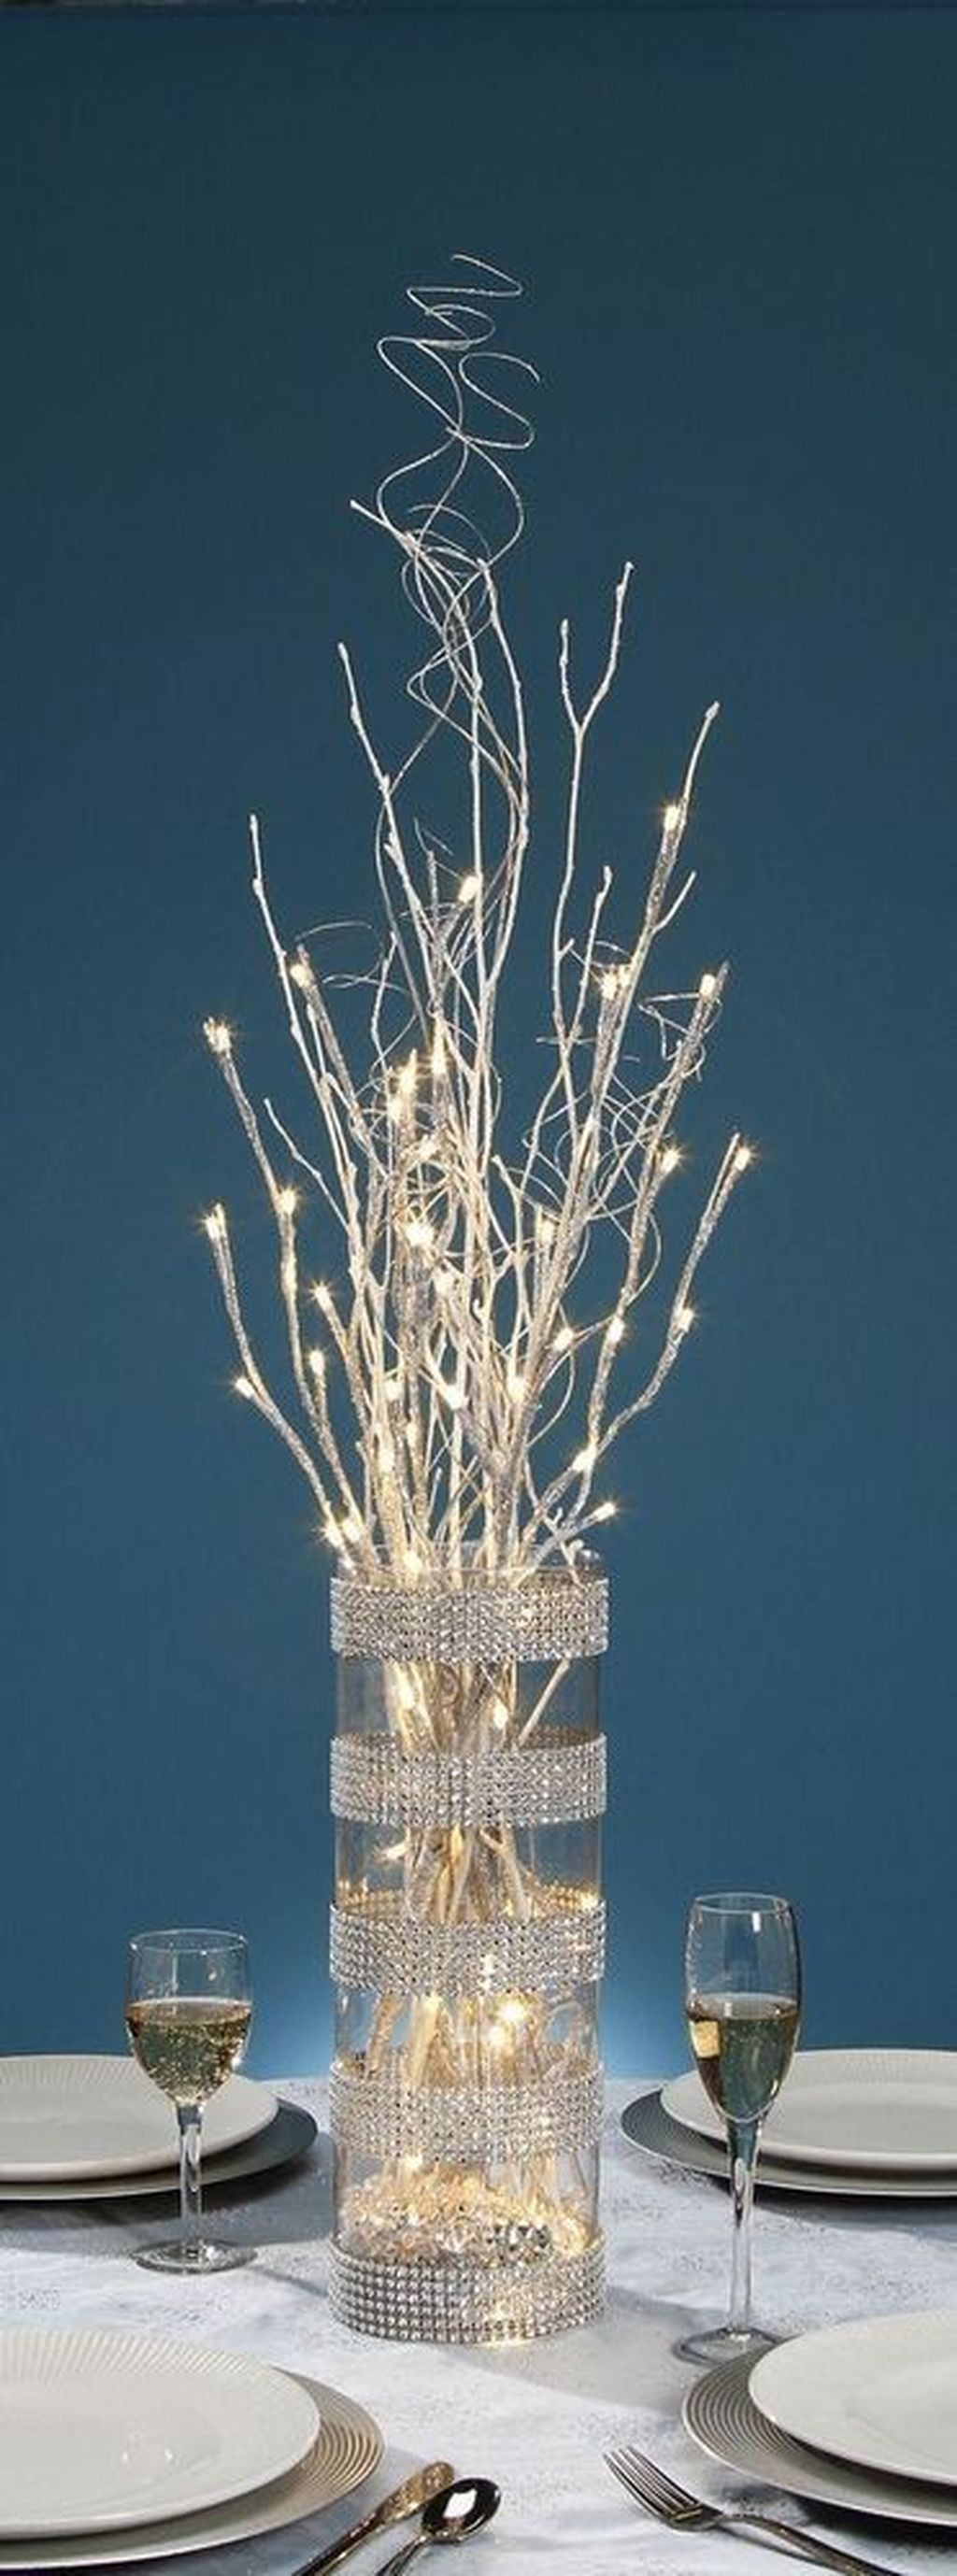 Inspiring Modern Rustic Christmas Centerpieces Ideas With Candles 78